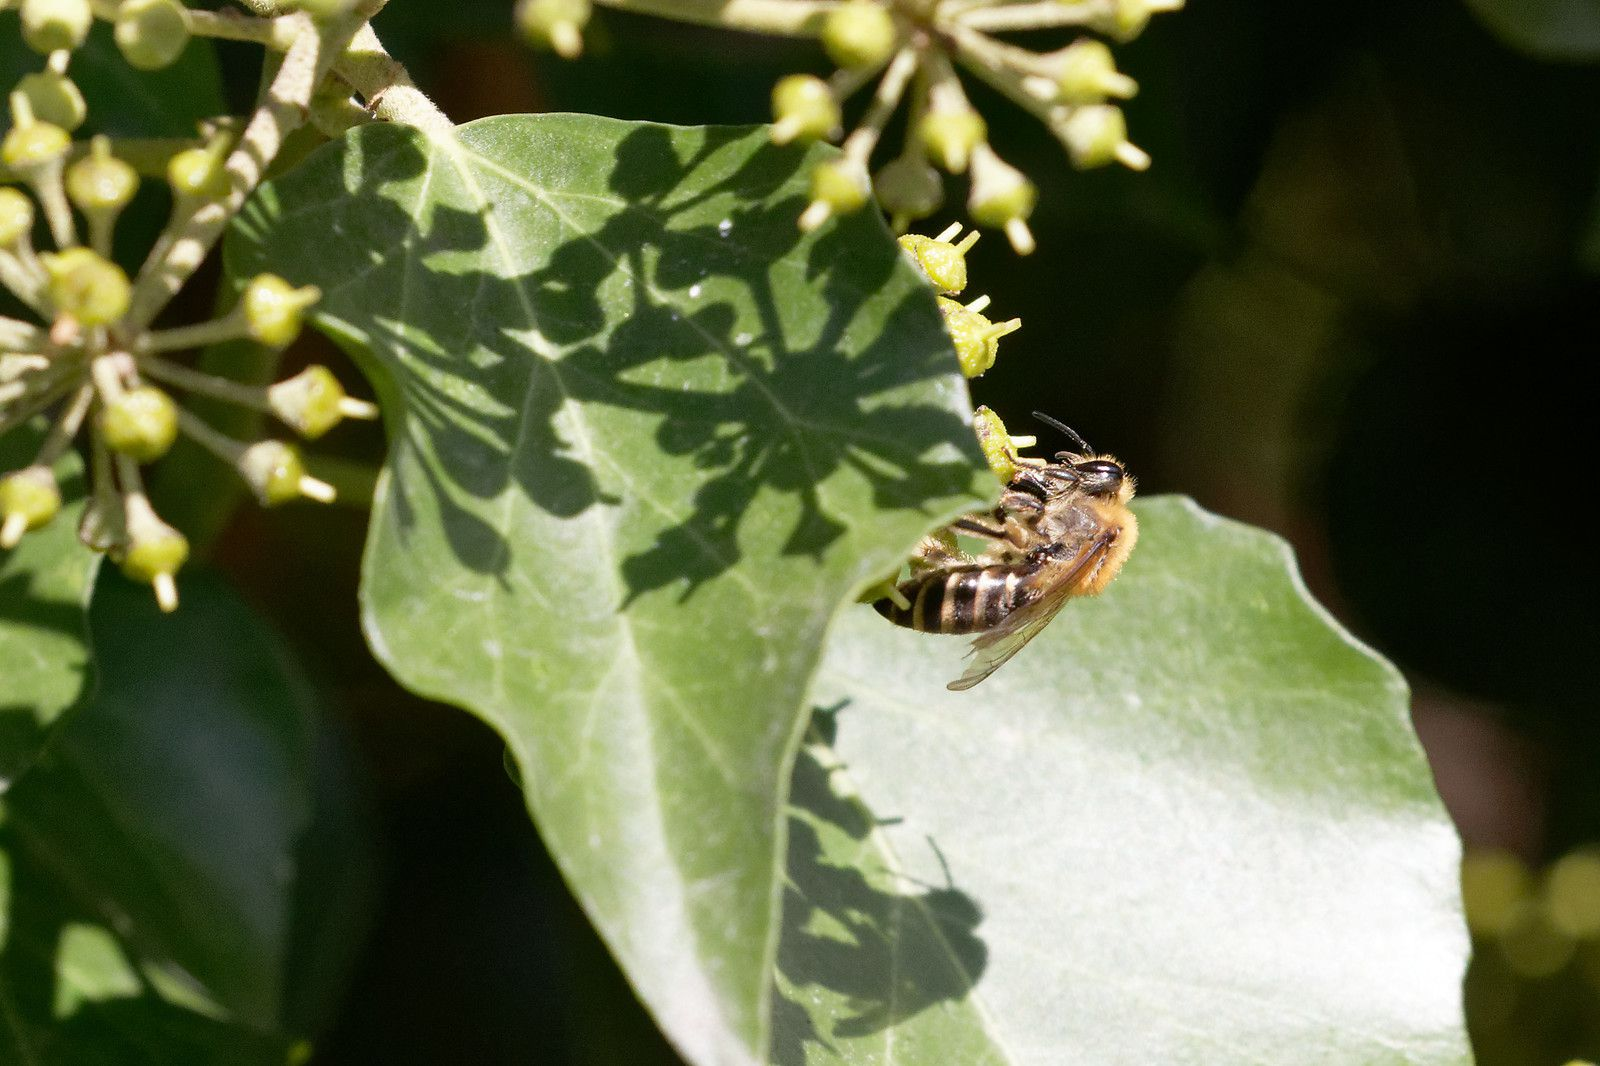 Colletes hederae, Collète du lierre